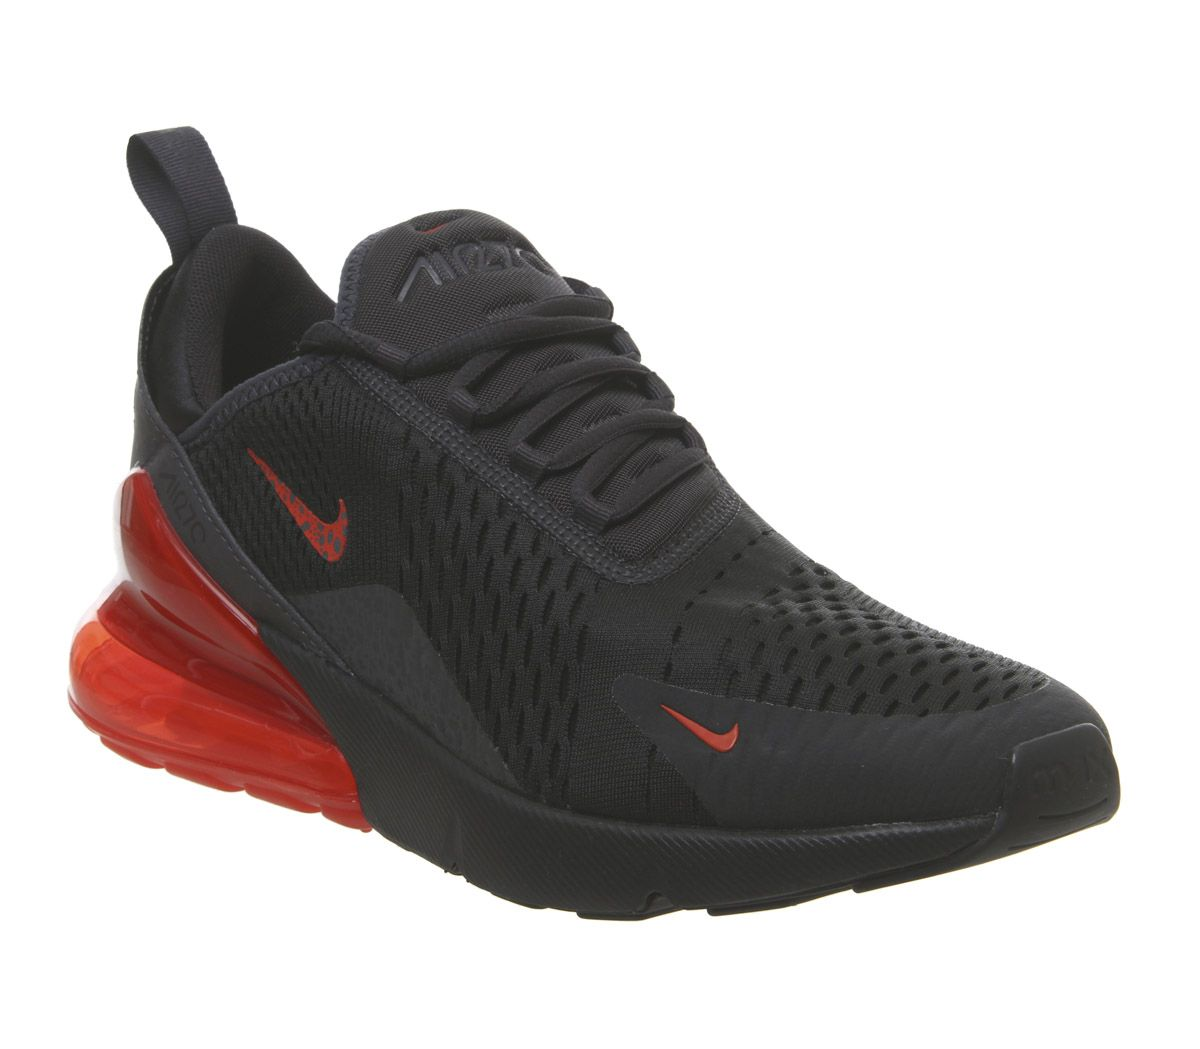 reputable site cf026 f3ae1 Nike Air Max 270 Trainers Off Noir Habernero Red Thunder Grey - His ...